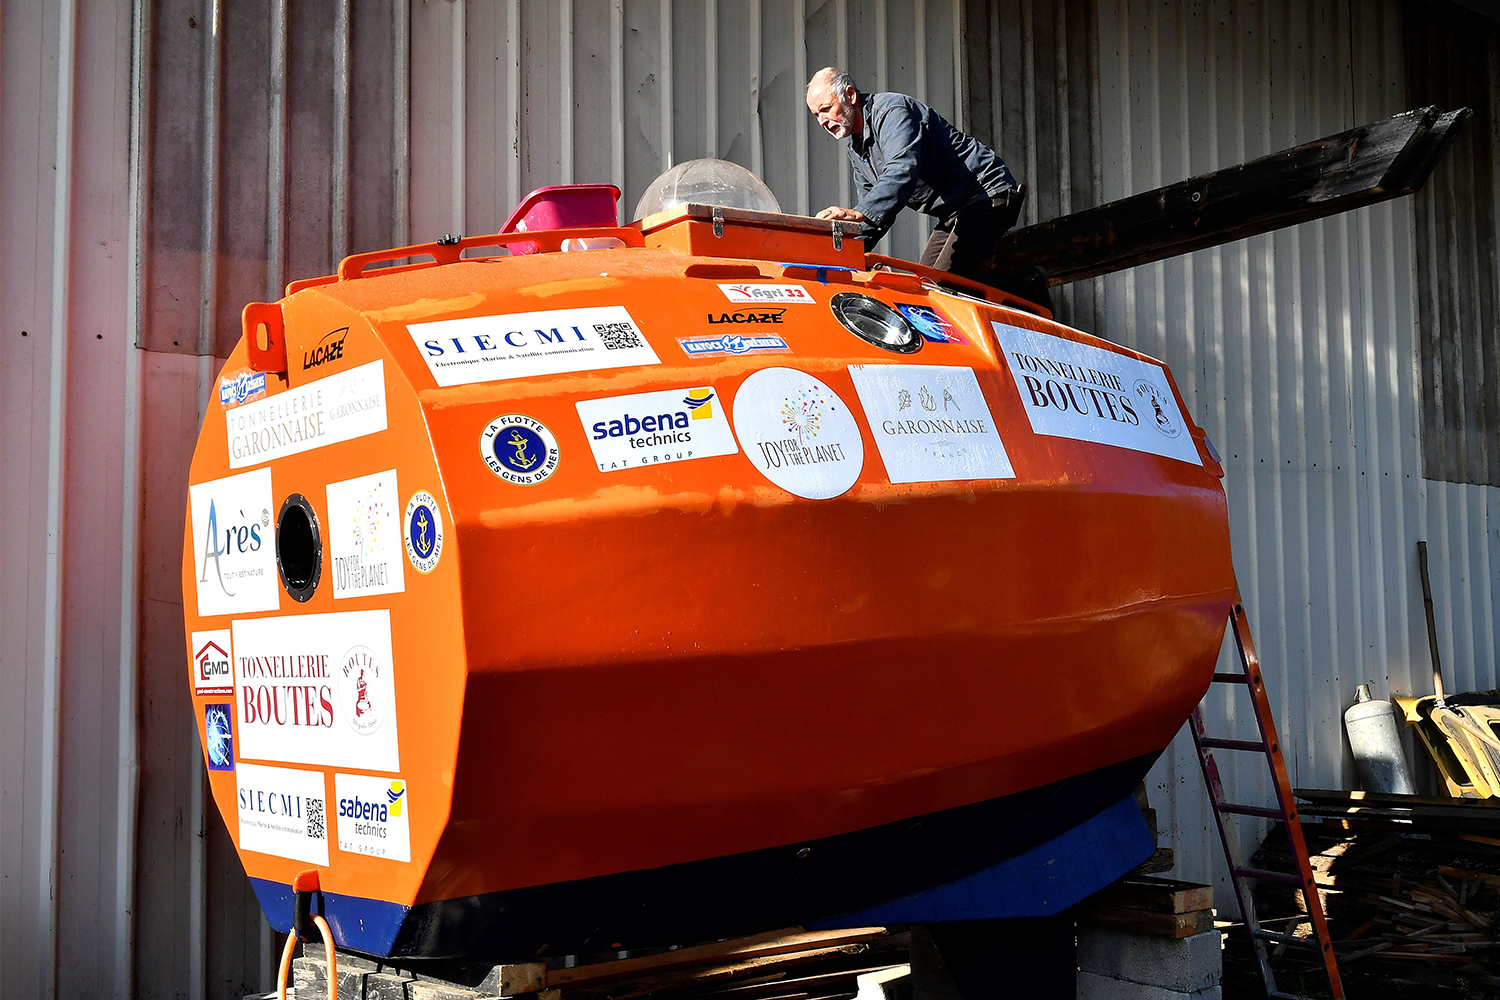 Jean-Jacques Savin crossed the Atlantic Ocean in a barrel at the age of 72.